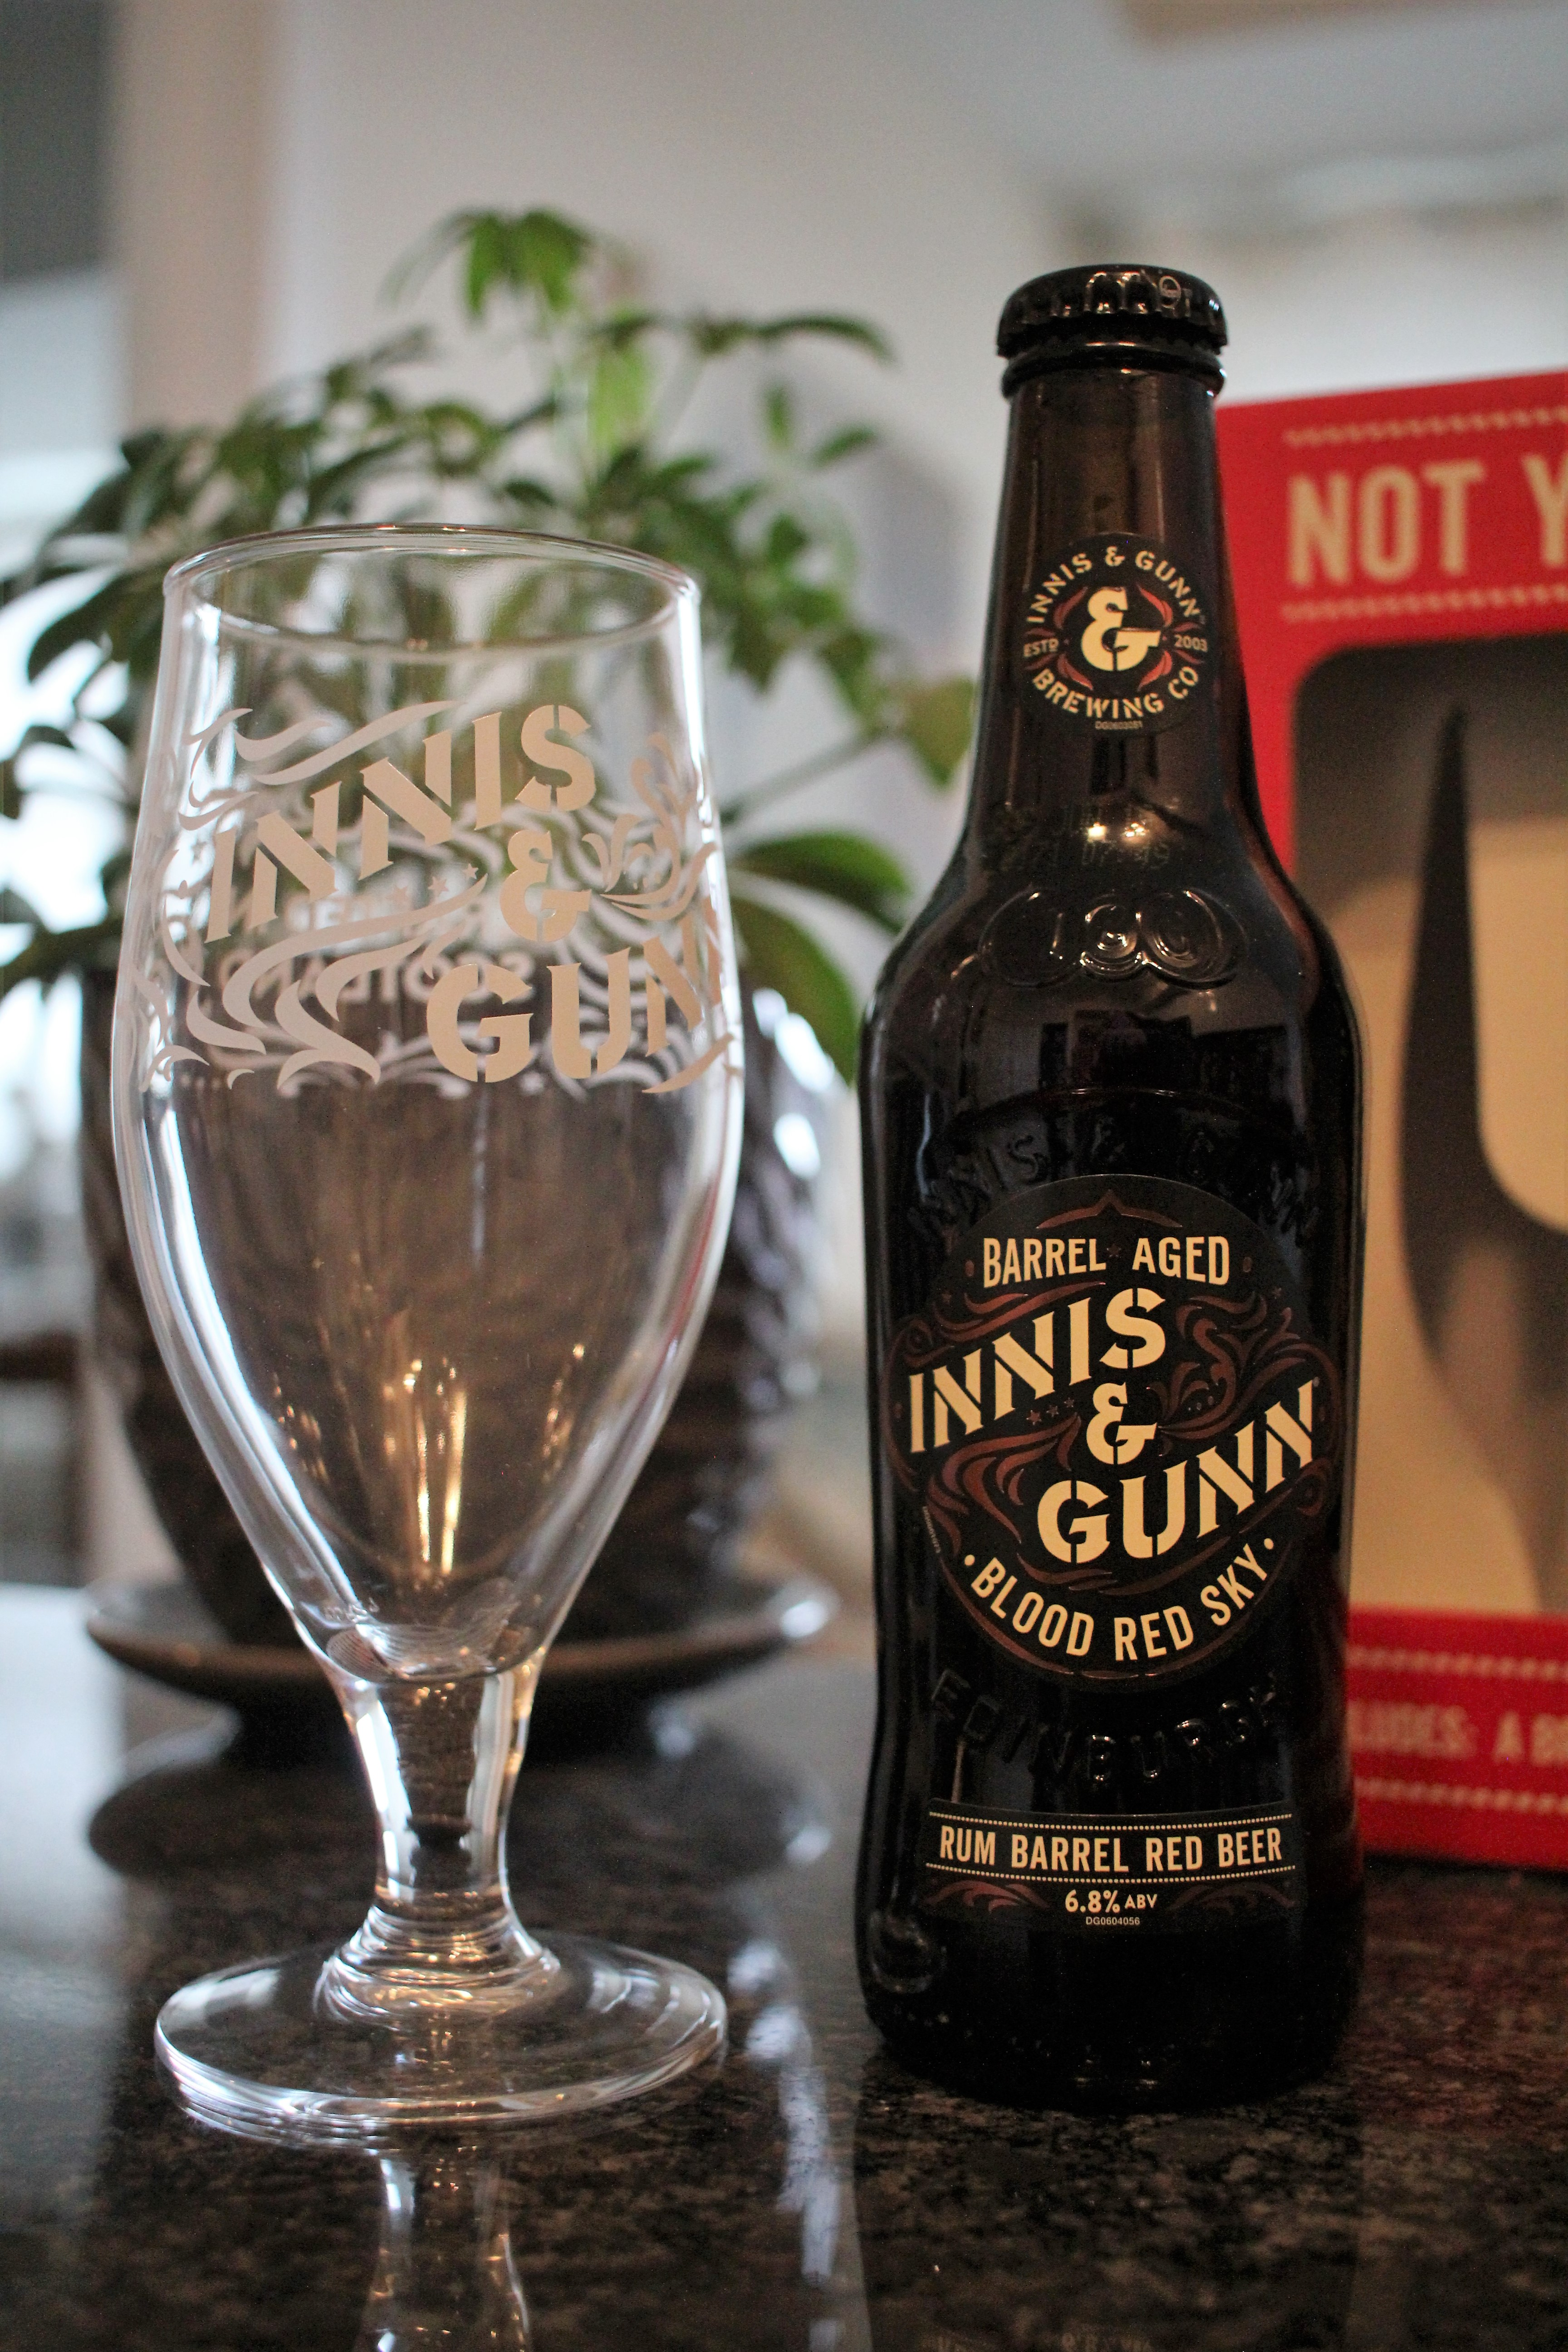 Innis & Gunn Blood Red Sky Red Beer